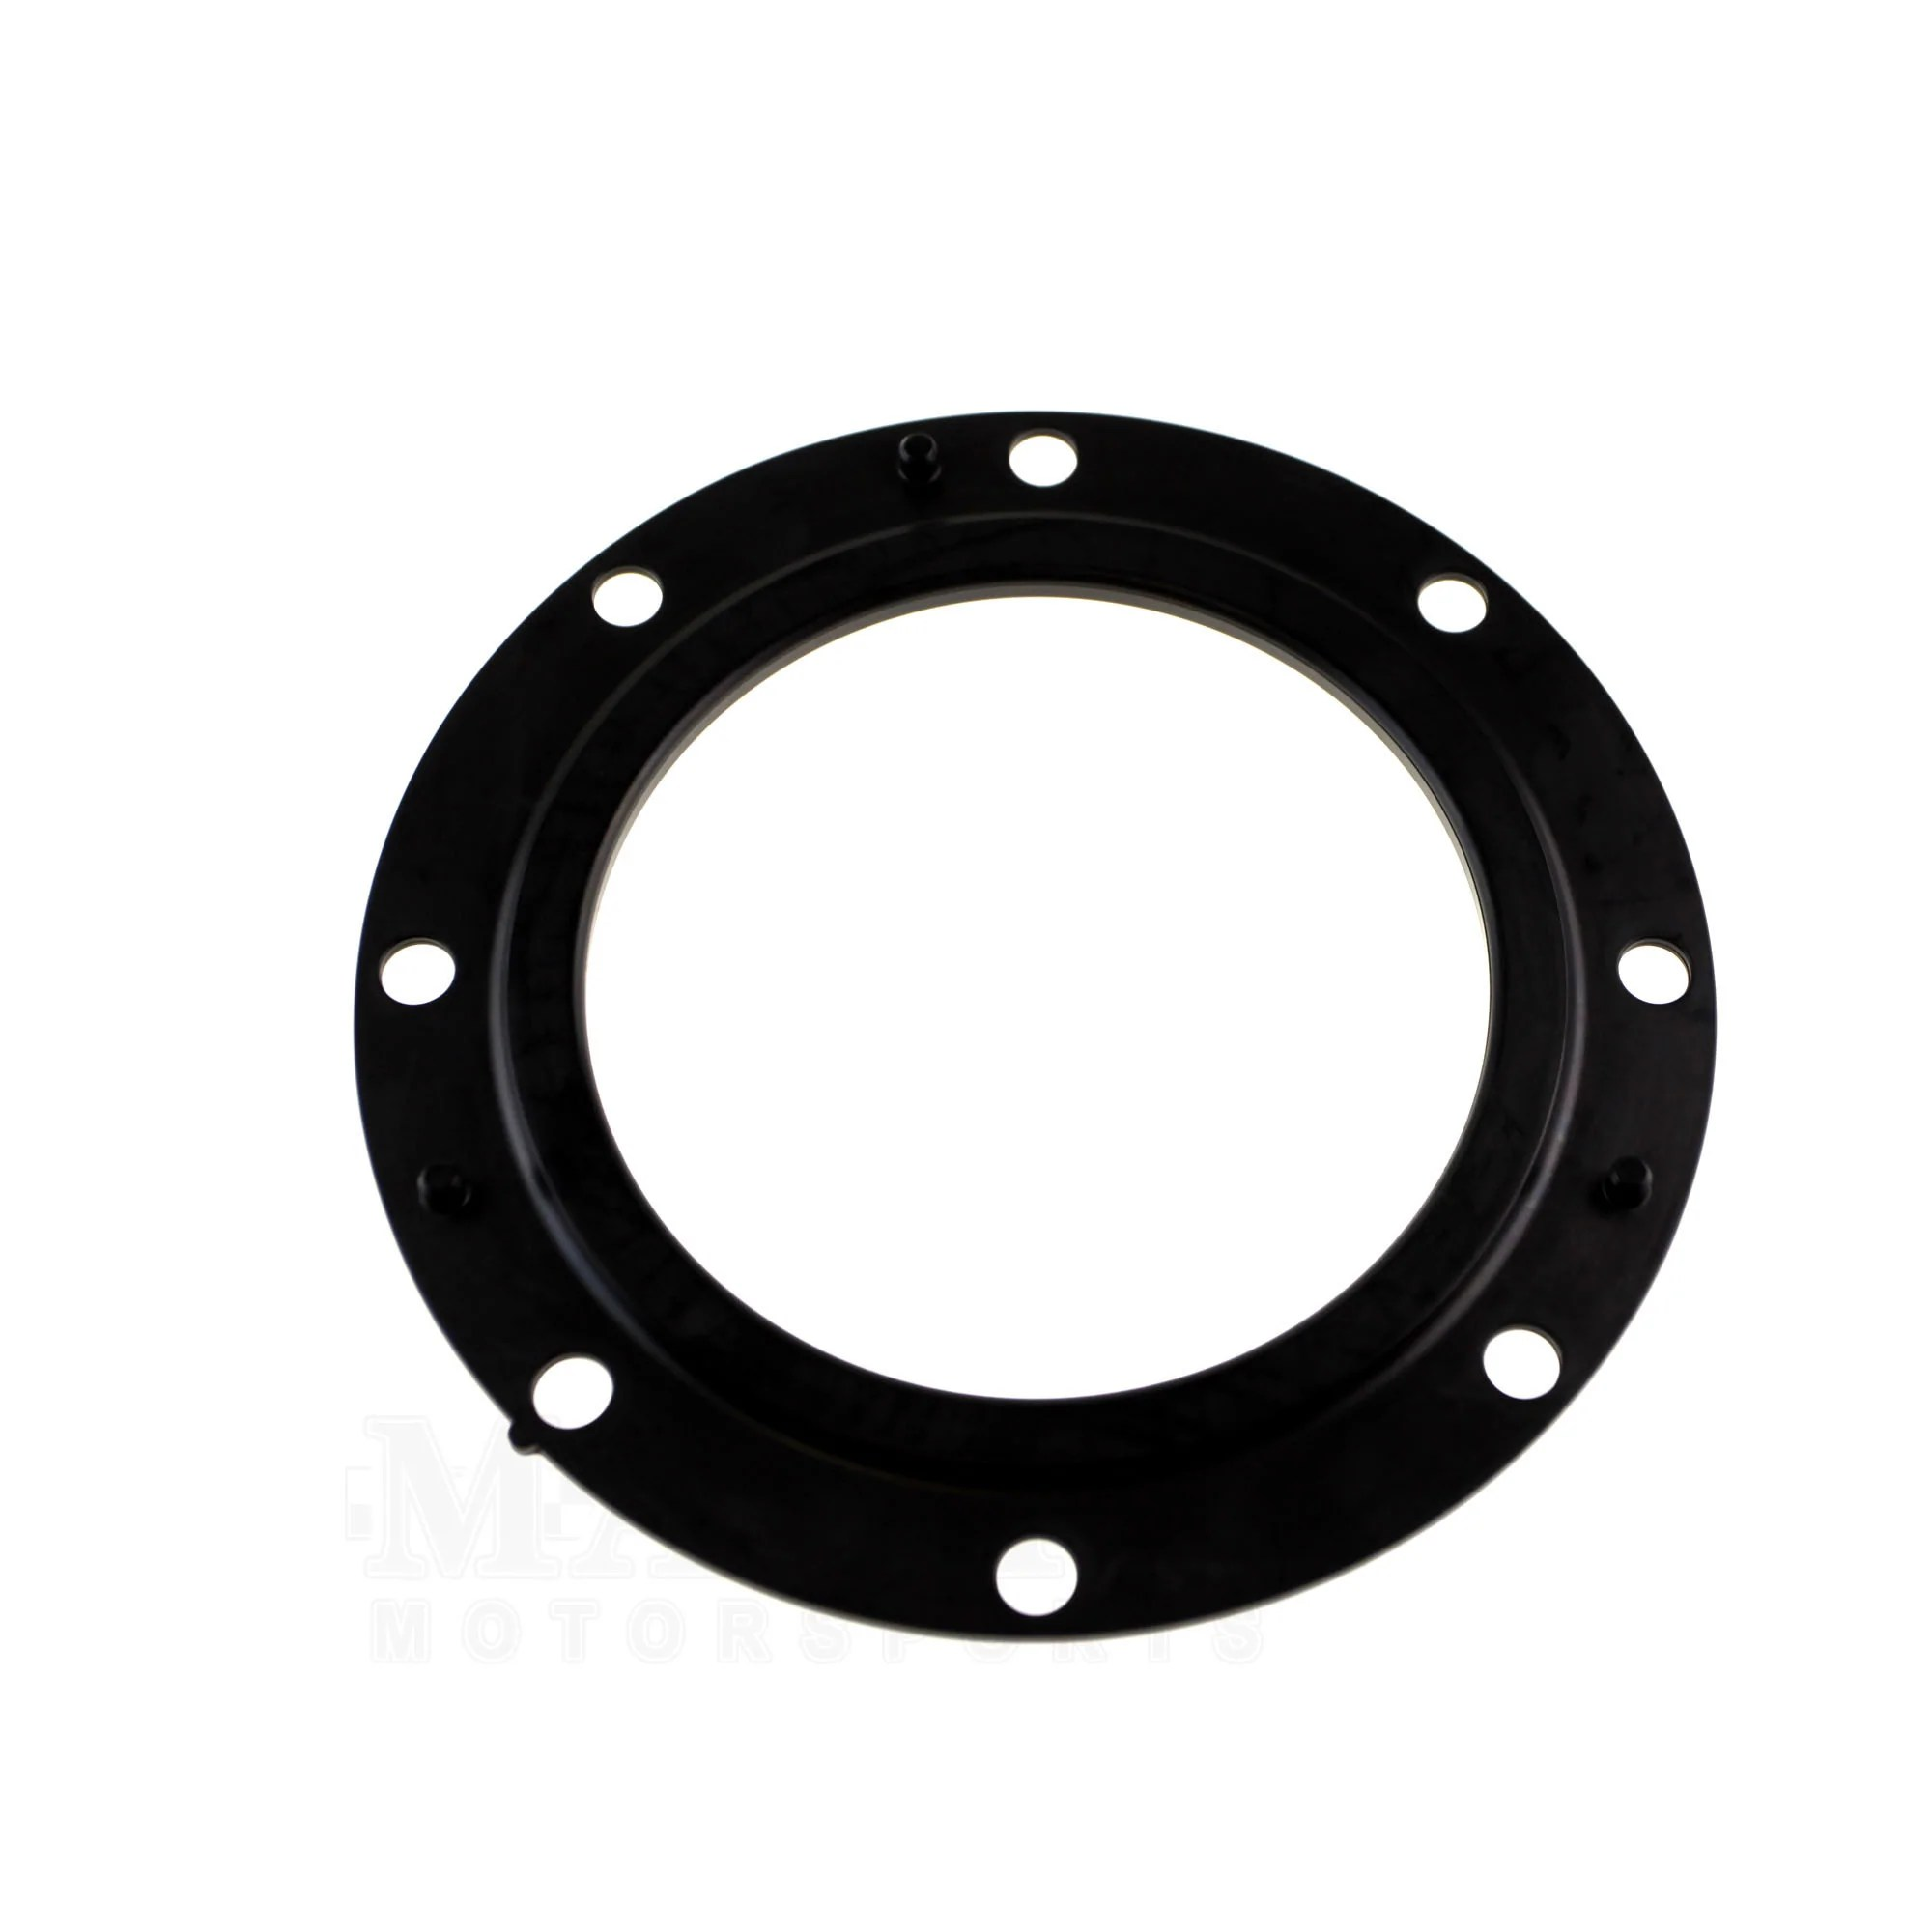 hight resolution of subaru fuel tank gasket 2008 2014 wrx sti